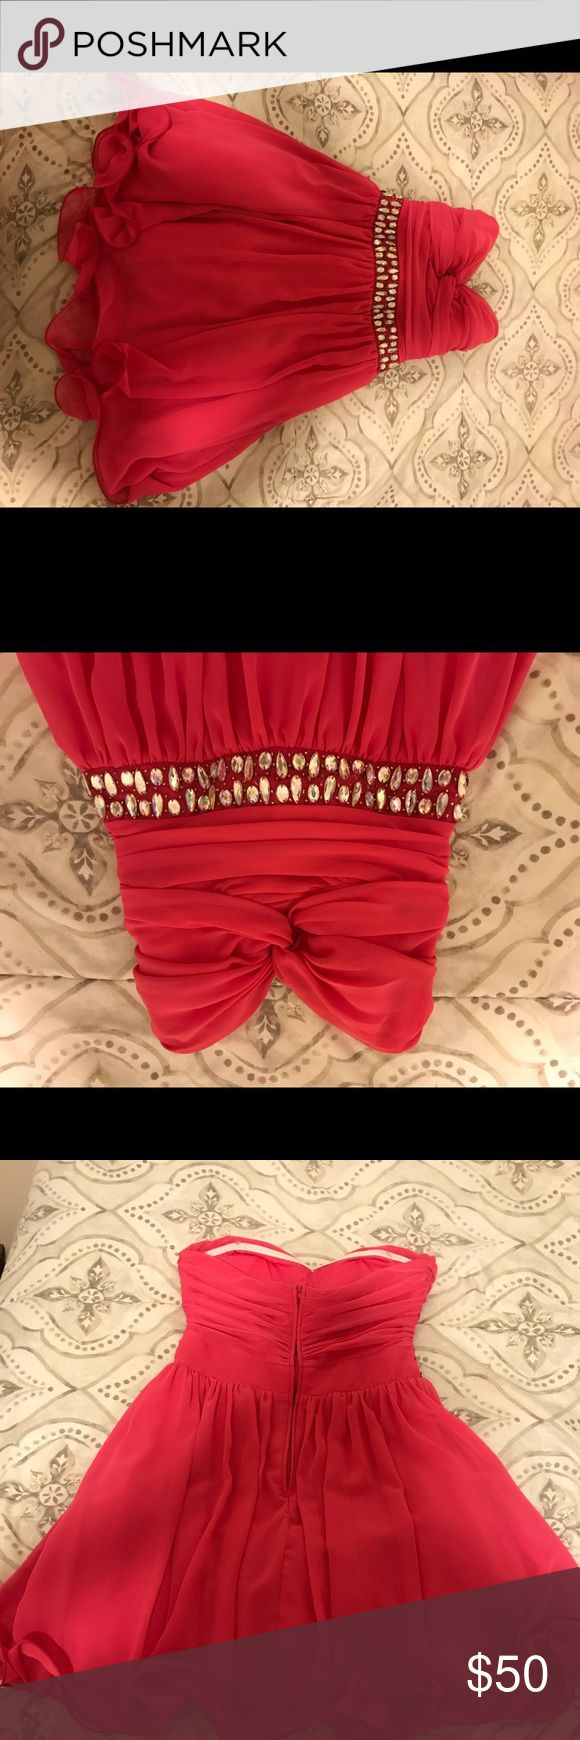 Pink B. Darlin dress with rhinestone belt Size 9/10 with a zipper back. No missing rhinestones on the front. Perfect for a formal/winter ball or school dance. Strapless but I did not experience any slipping. Very comfortable! B. Darlin Dresses Strapless